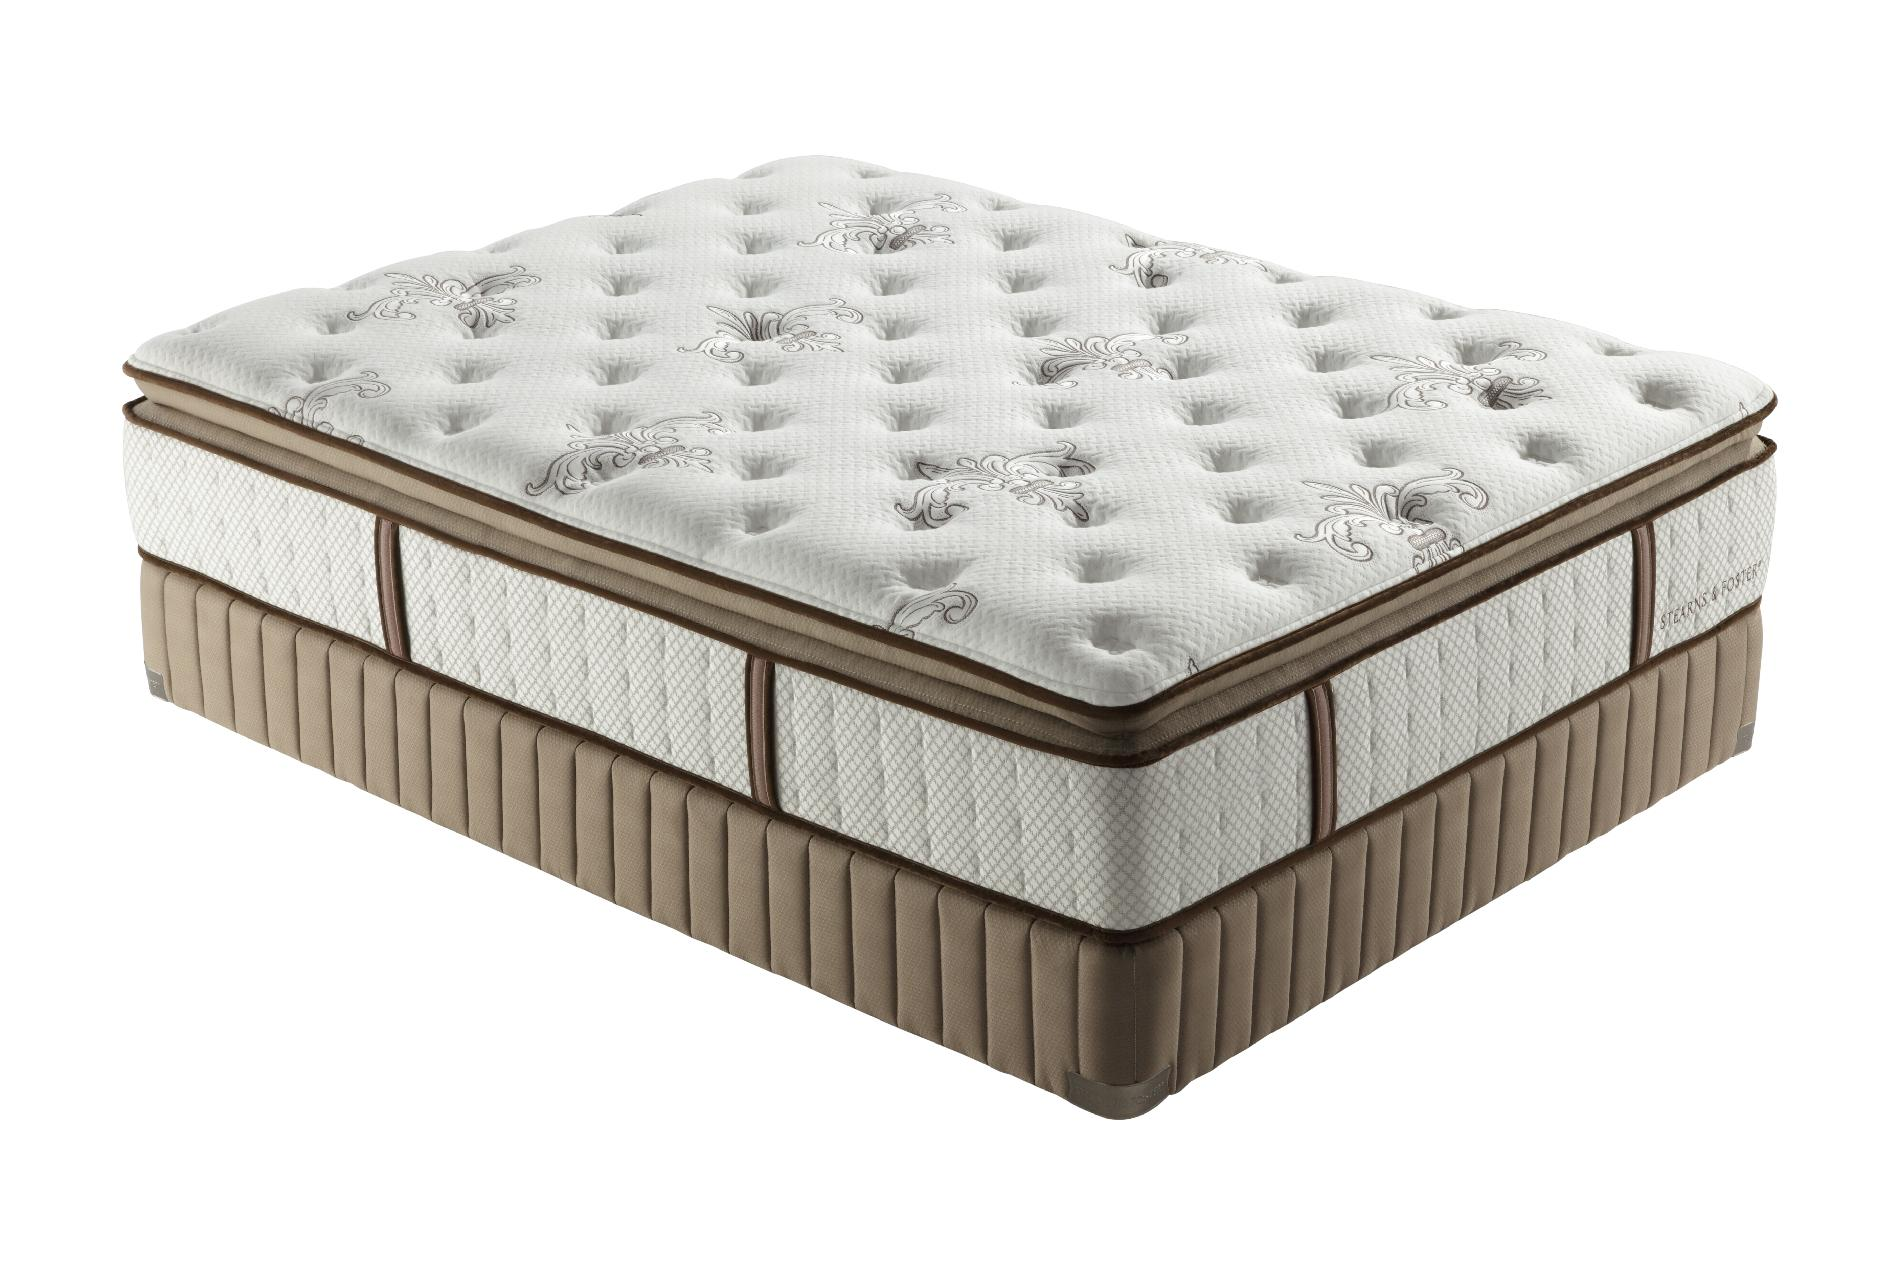 Stearns & Foster Estate Chasity II Firm Euro Pillowtop Queen Mattress Only